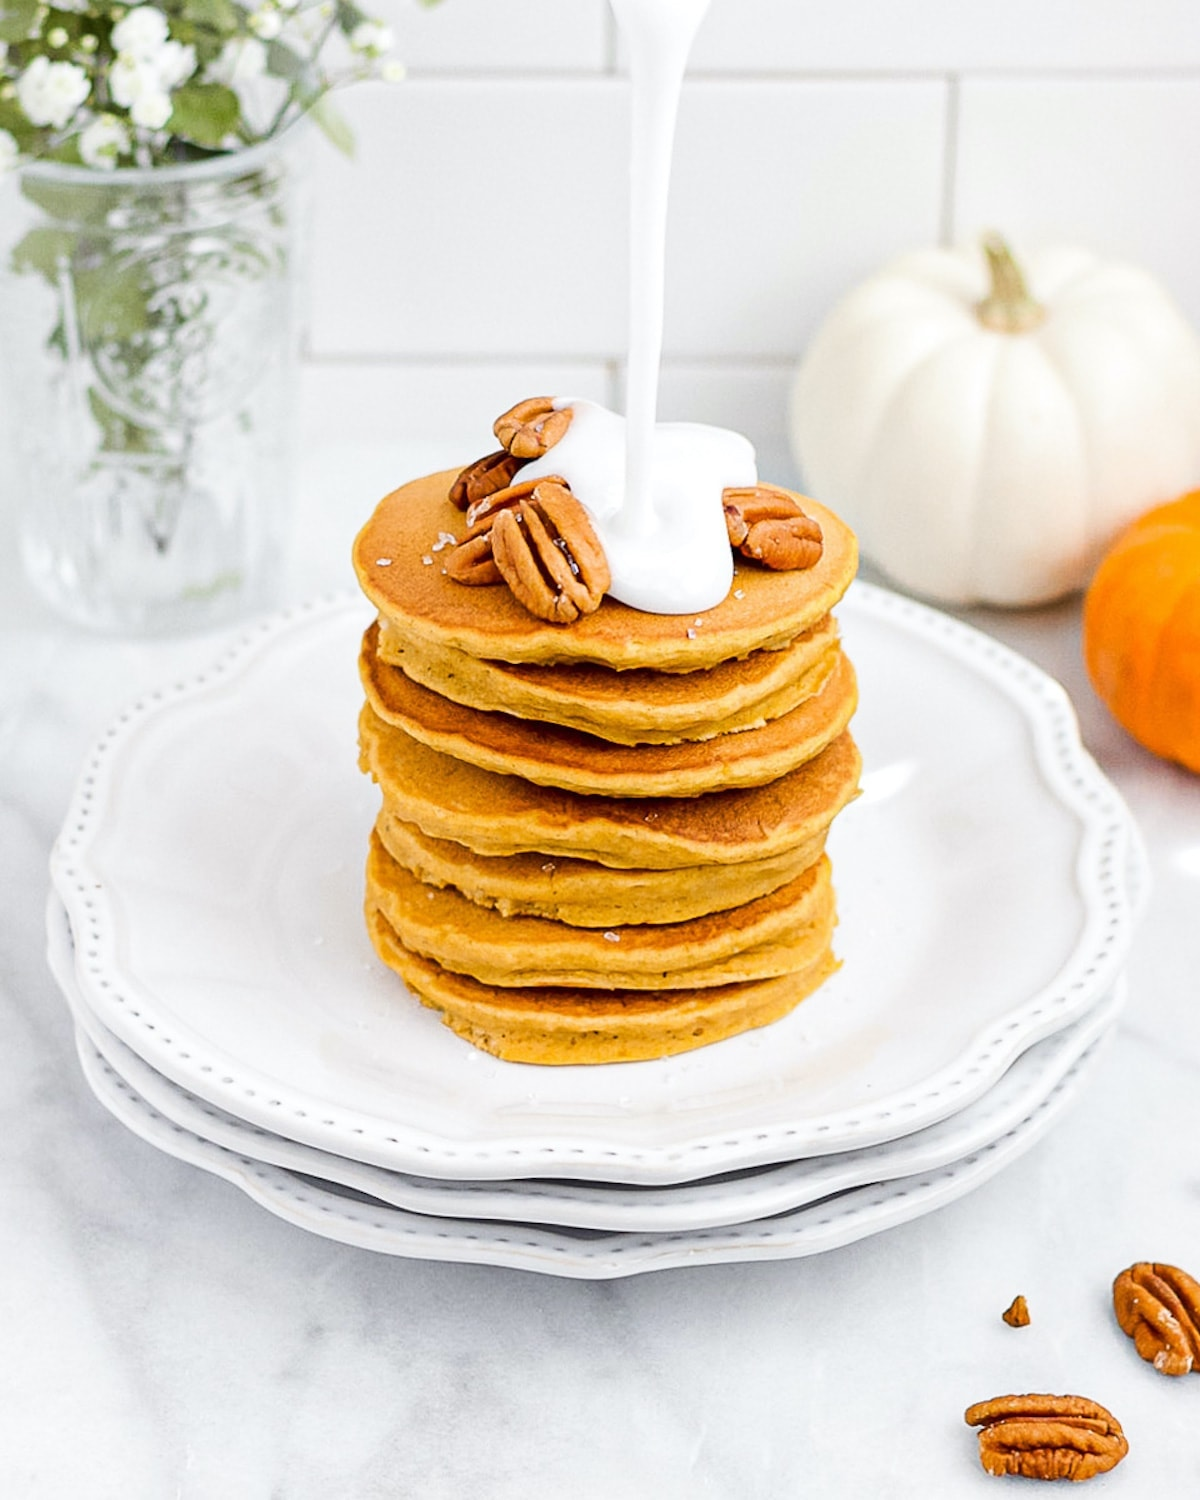 A stack of 7 pancakes sitting on three white plates, garnished with sugar, pecans, and a drizzle of white sugar glaze. The background has pecans, pumpkins, and green and white flowers.